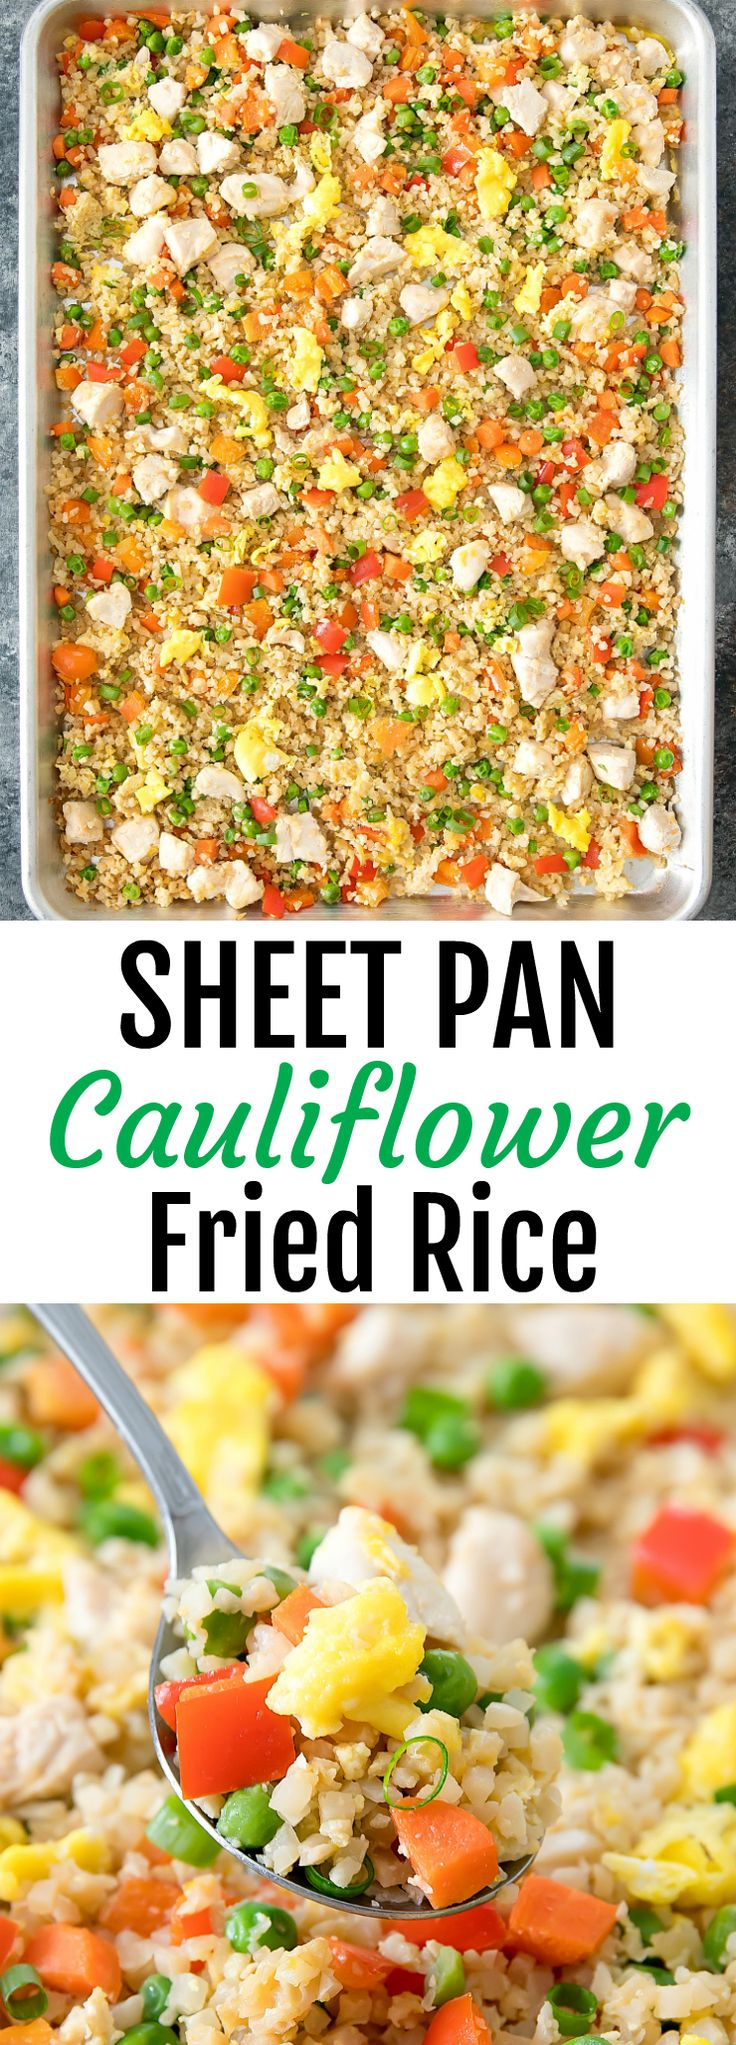 Sheet Pan Cauliflower Fried Rice. A healthier version of fried rice made baked on one sheet pan for an easy meal that is also good for weekly meal-prep.